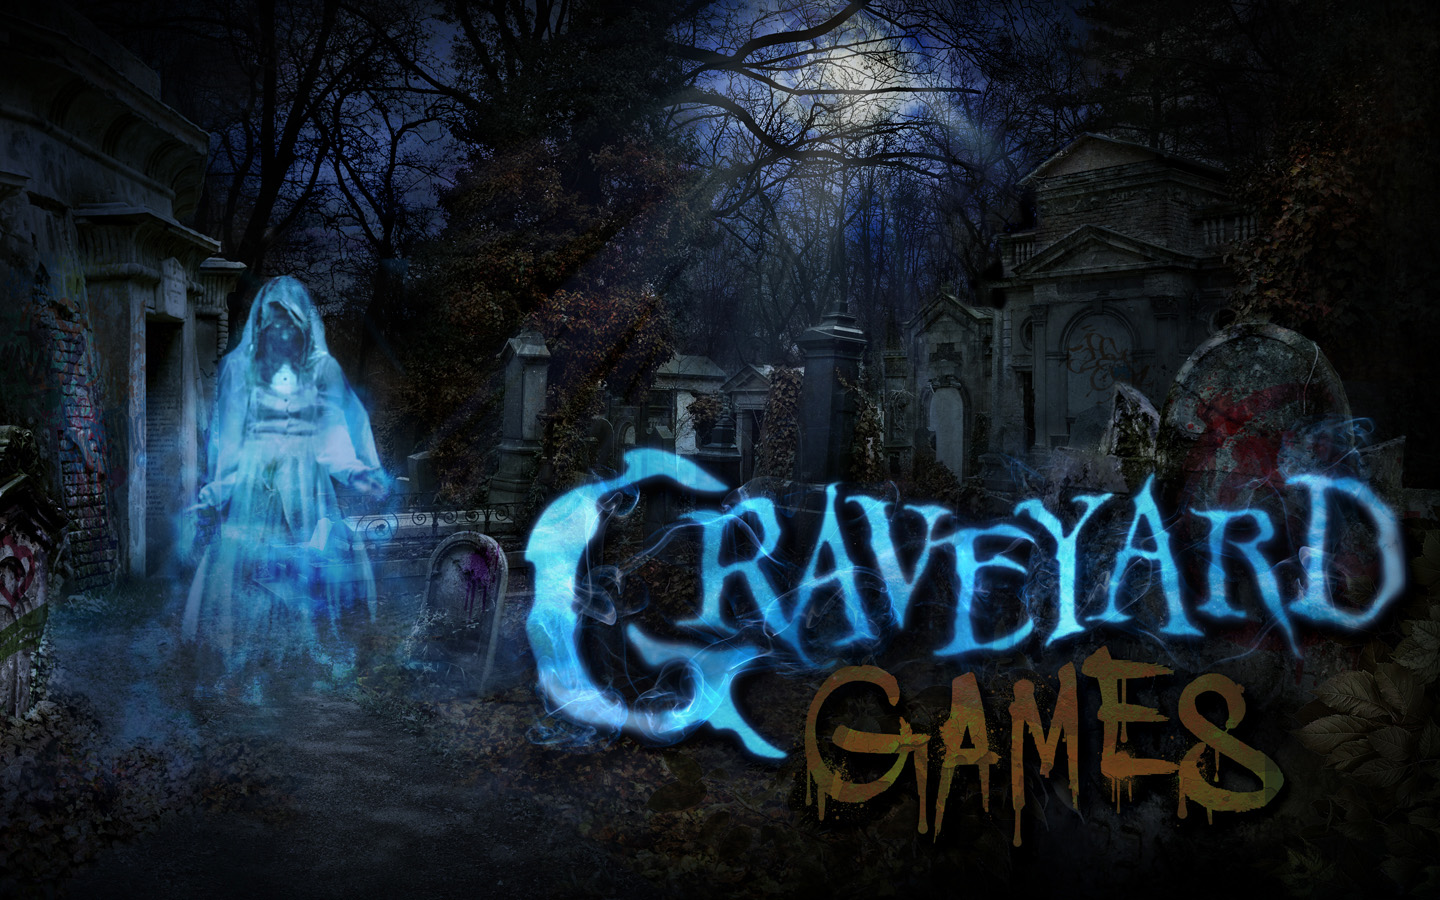 Graveyard Games announced for Halloween Horror Nights 2019